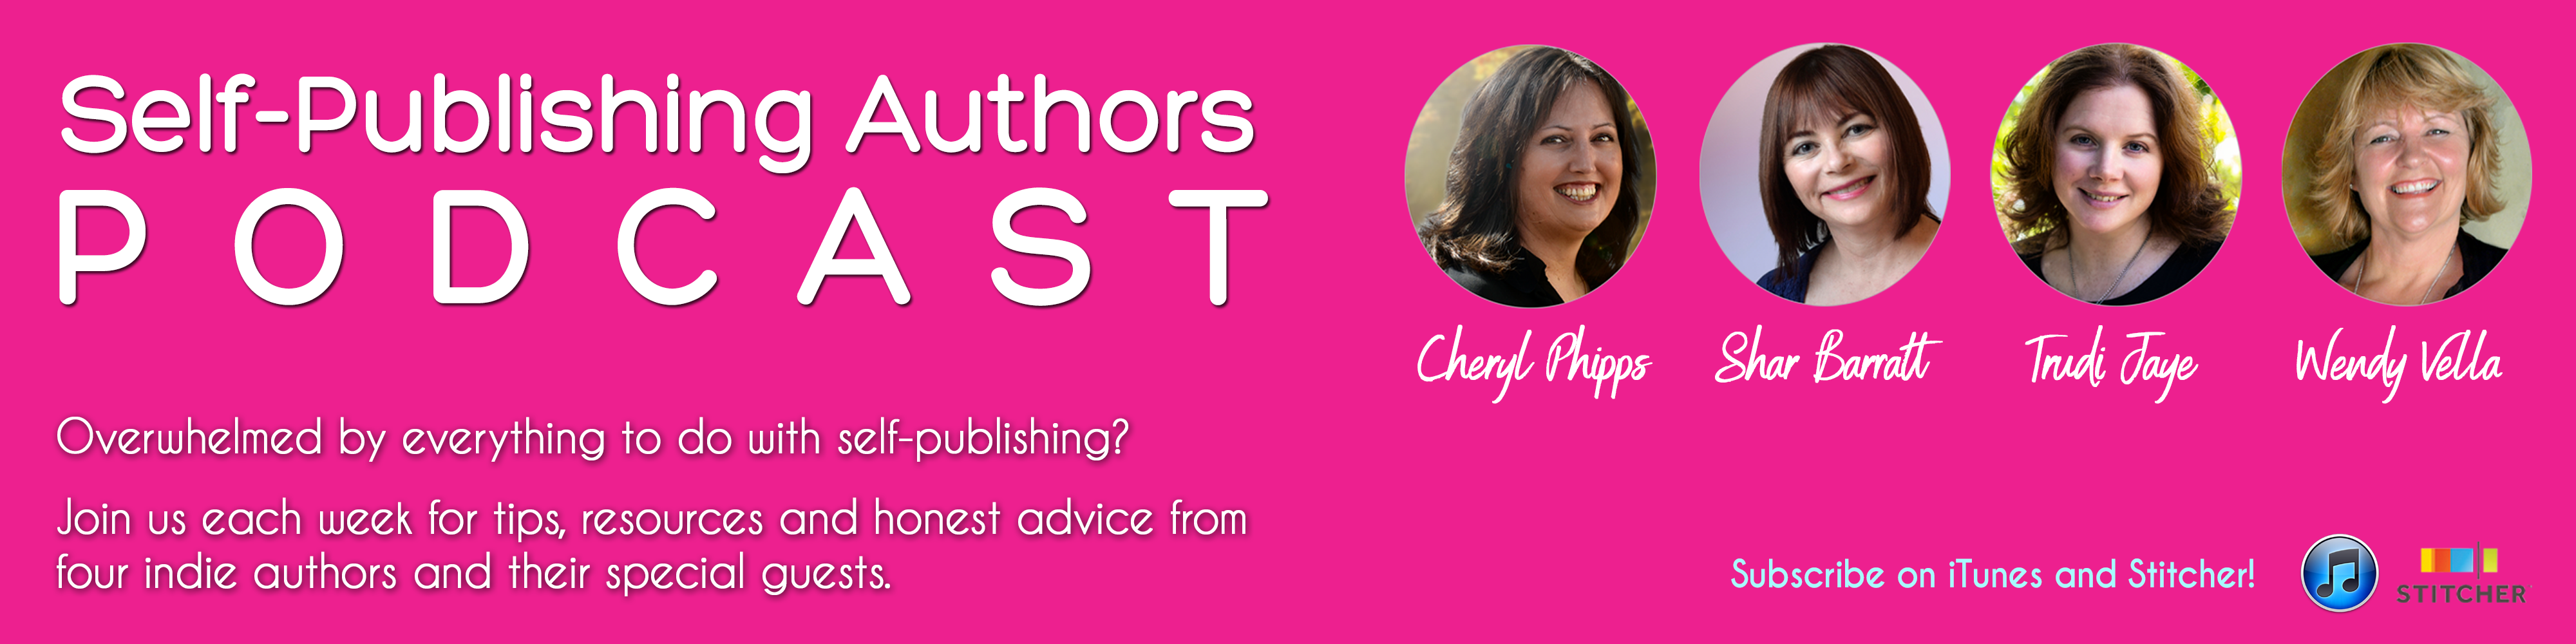 Self Publishing Authors Podcast